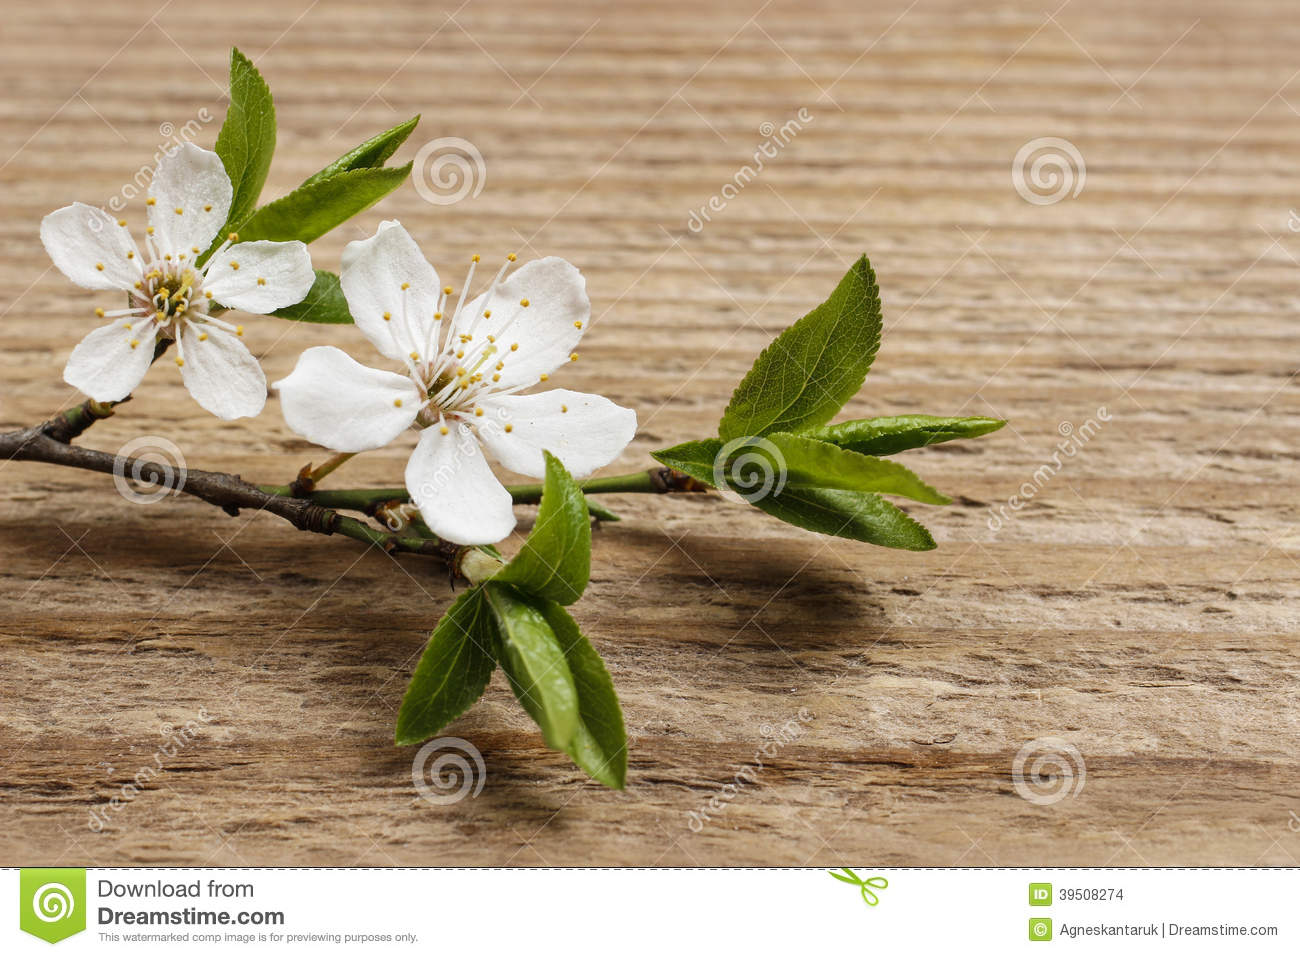 Apple blossom on wooden background